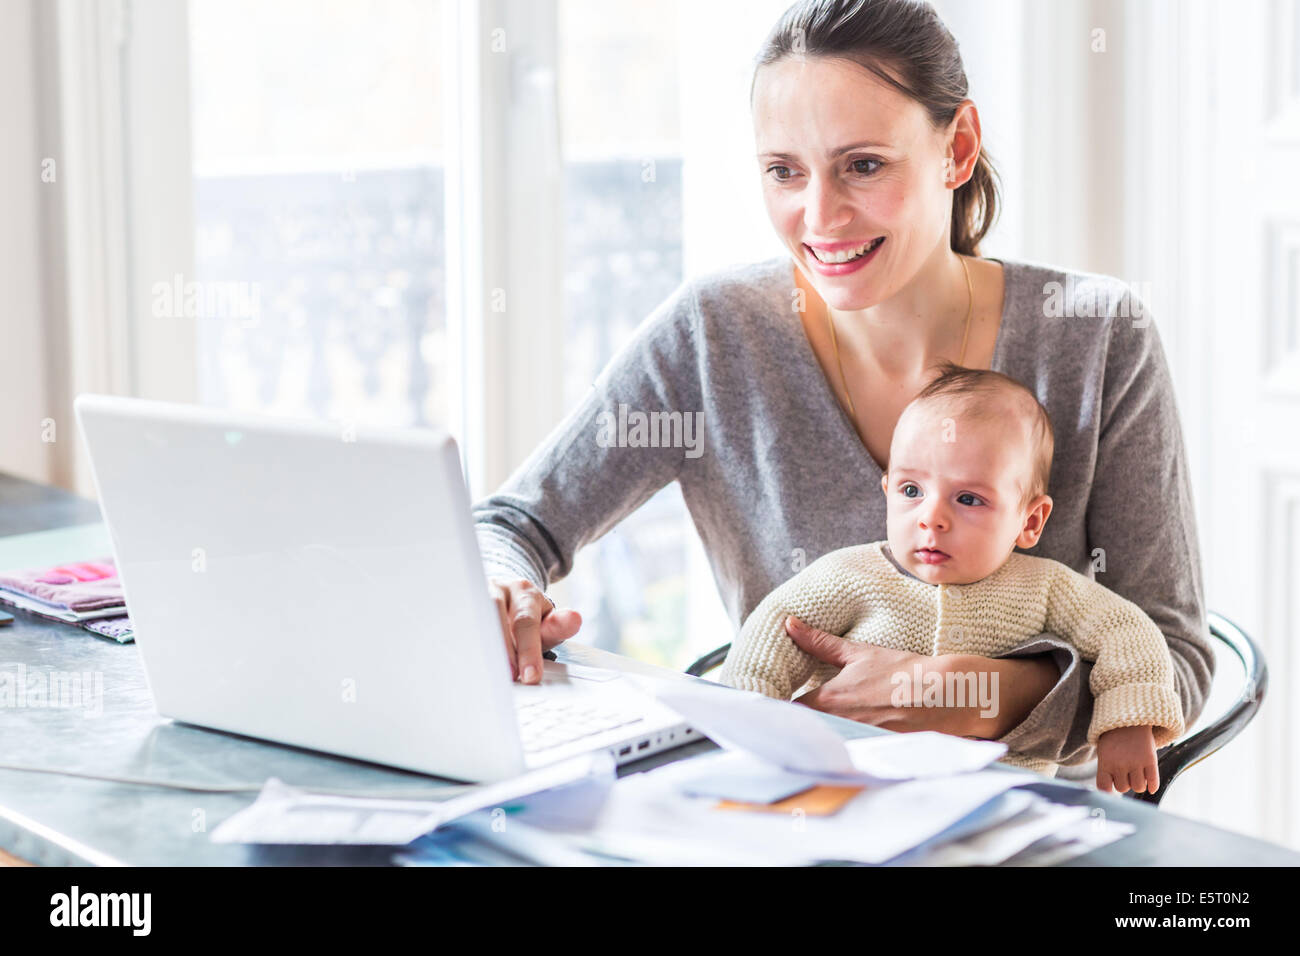 Woman using laptop computer with her 3 month old baby boy. - Stock Image